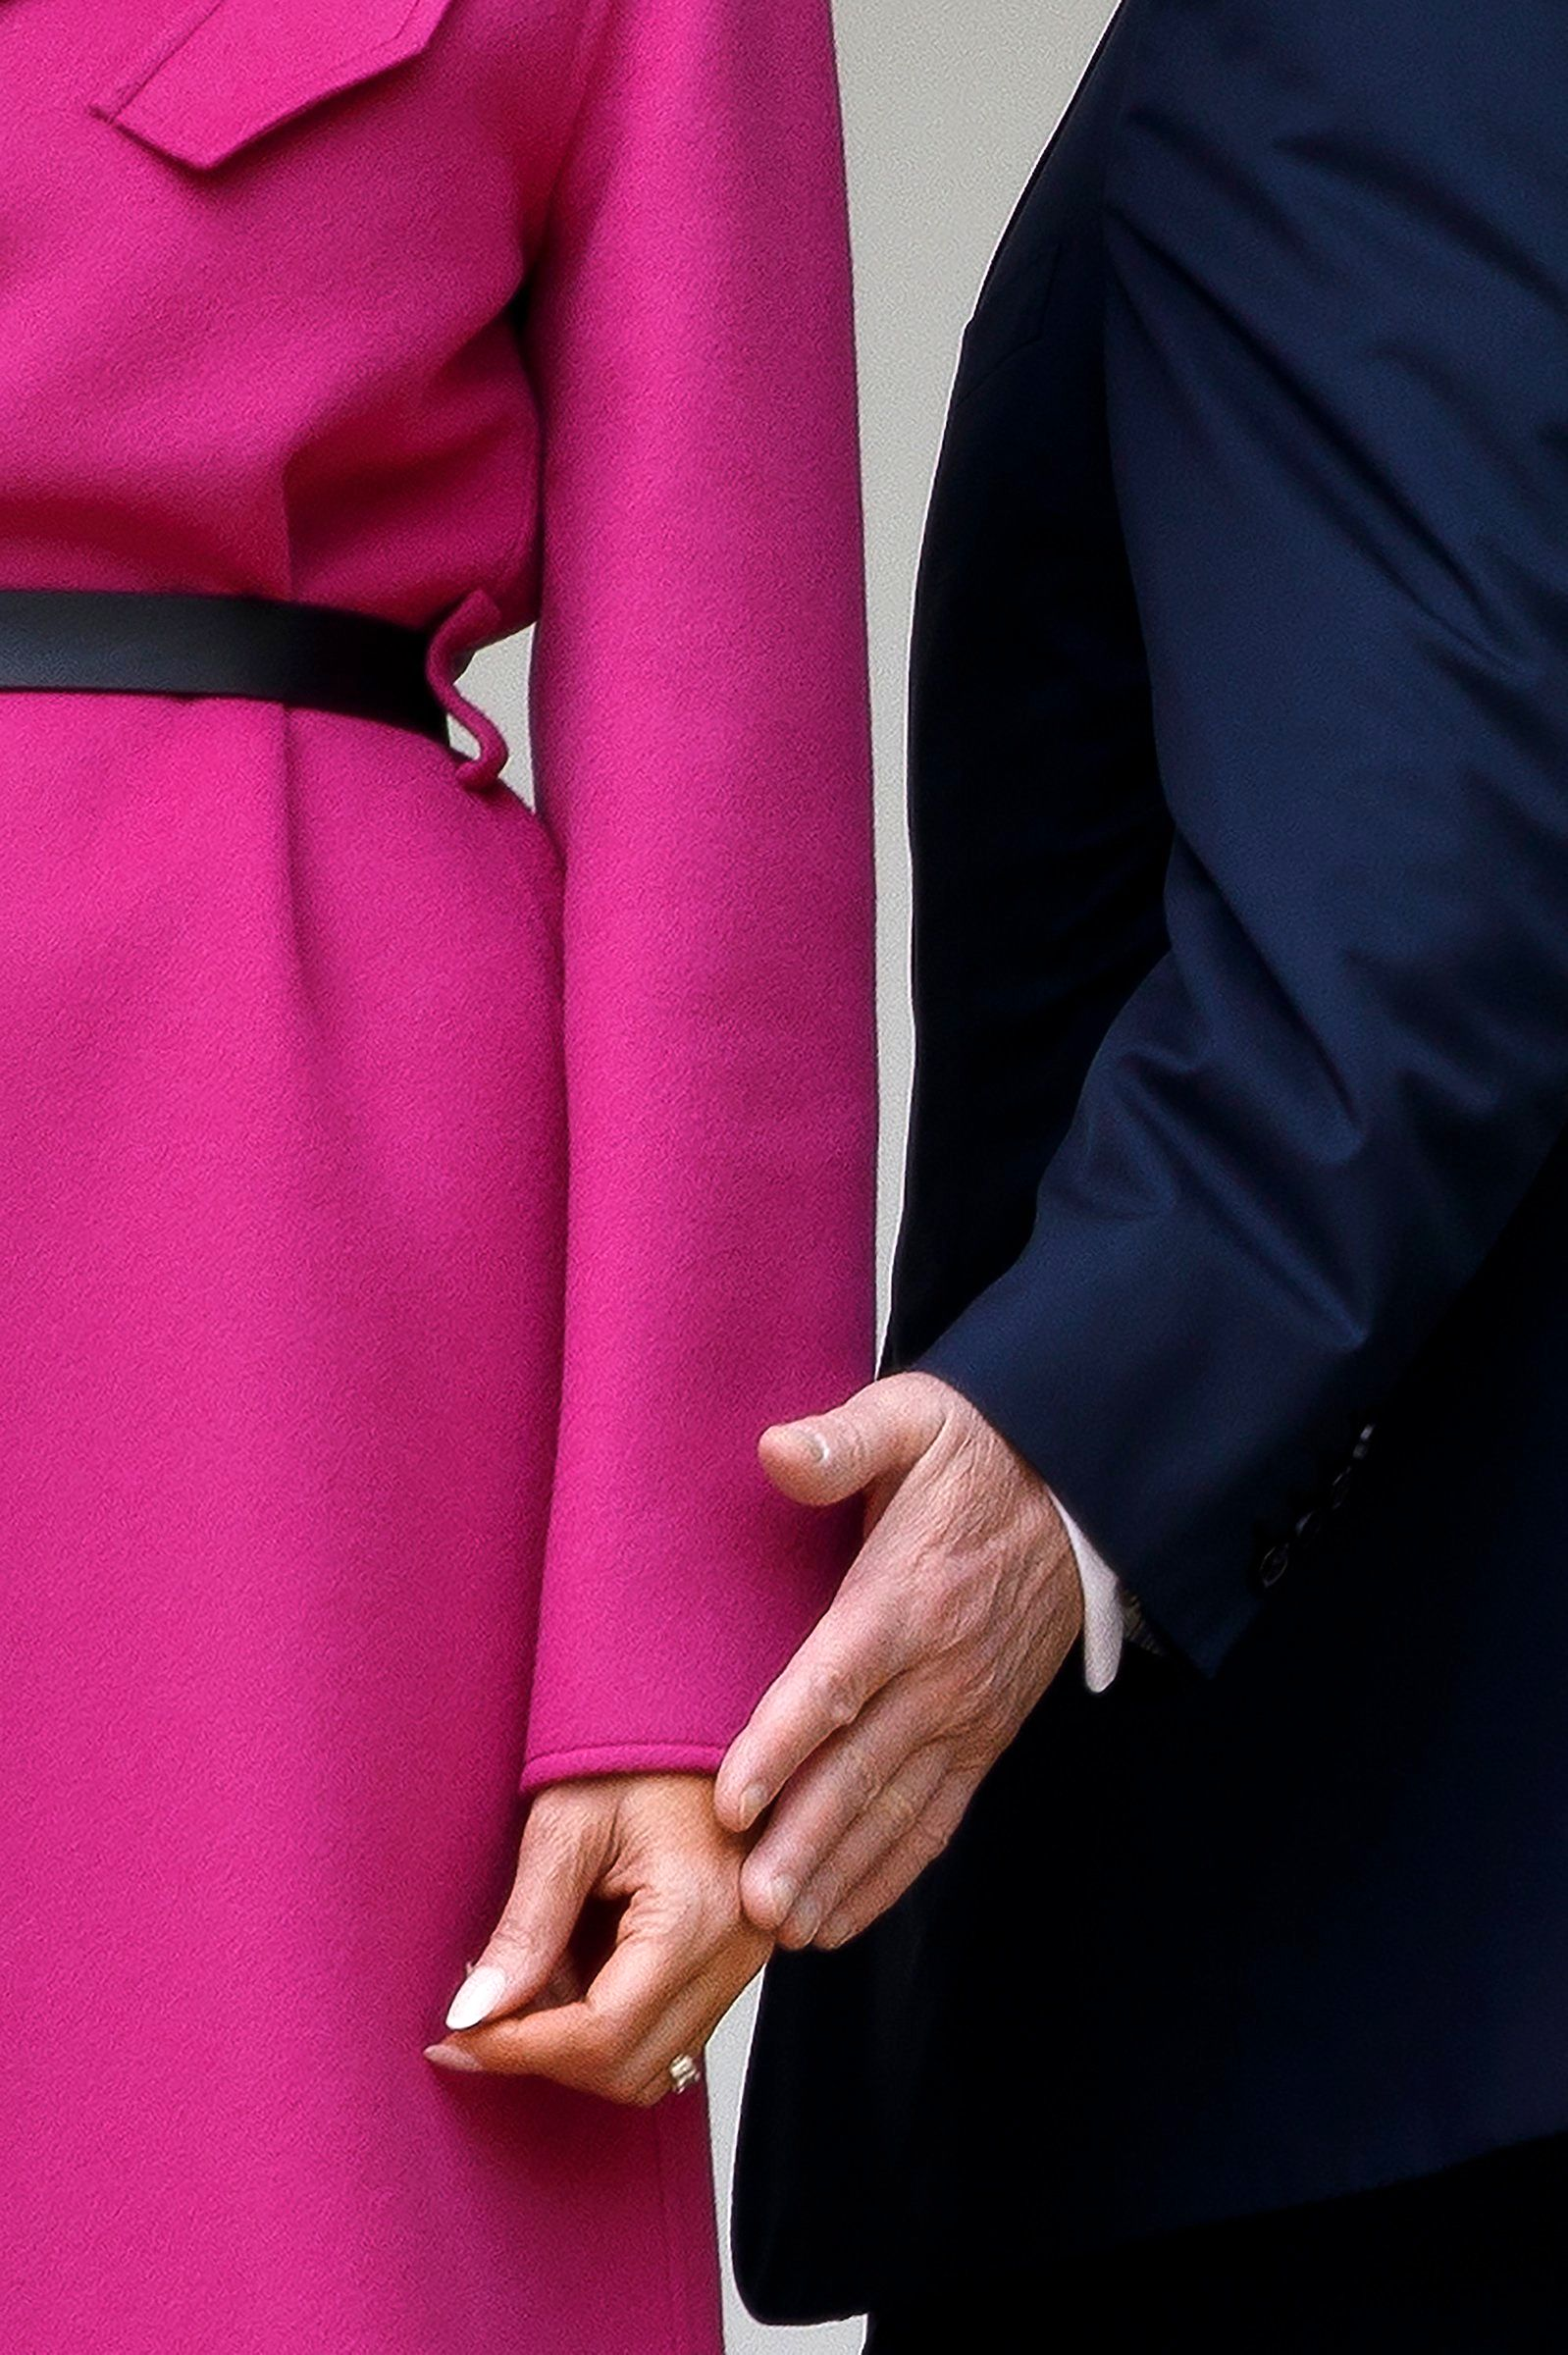 First Lady Melania Trump weathered a tumultuous year for the White House by the side of her husband, as she was in this image on April 11. As the President faces potential impeachment and removal from office, she remains a source of stability.